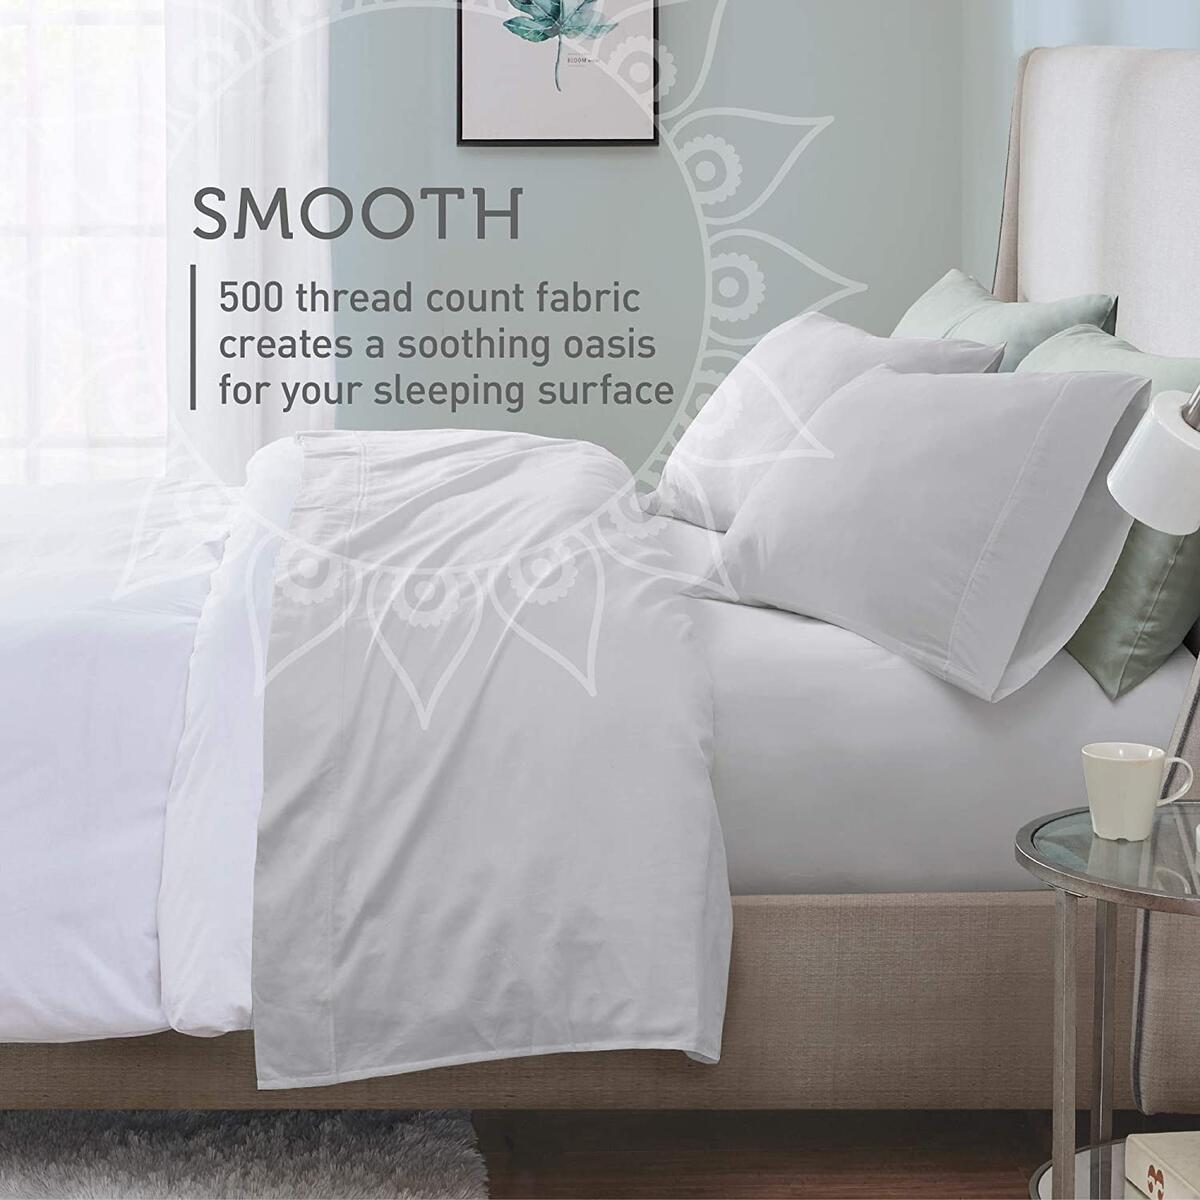 500 Thread Count Sateen Sheets Sets With Antimicrobial Fabric Treatment | 100% Long Staple Cotton Sheets | Hotel Quality Deep Pocket Fit Mattress Up To 14